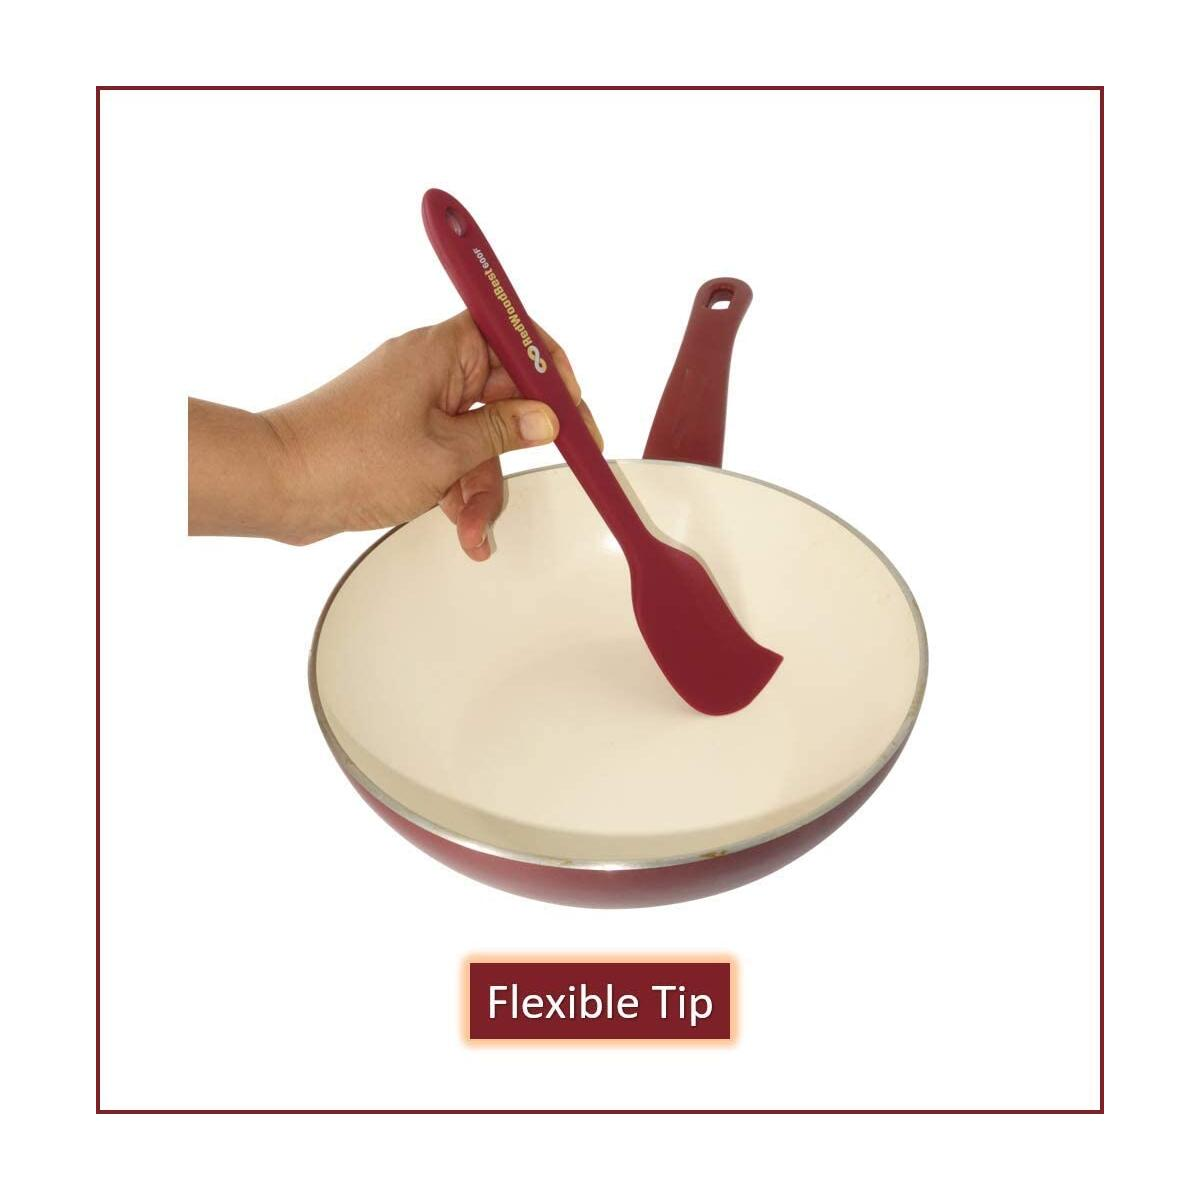 RedWoodBest Premium 600F Heat Resistant Silicone Spatula 2 Set Created for Cooking, Baking and Mixing, One Piece Design, Non-Stick, Strong Stainless Steel Core (Red Dahlia)